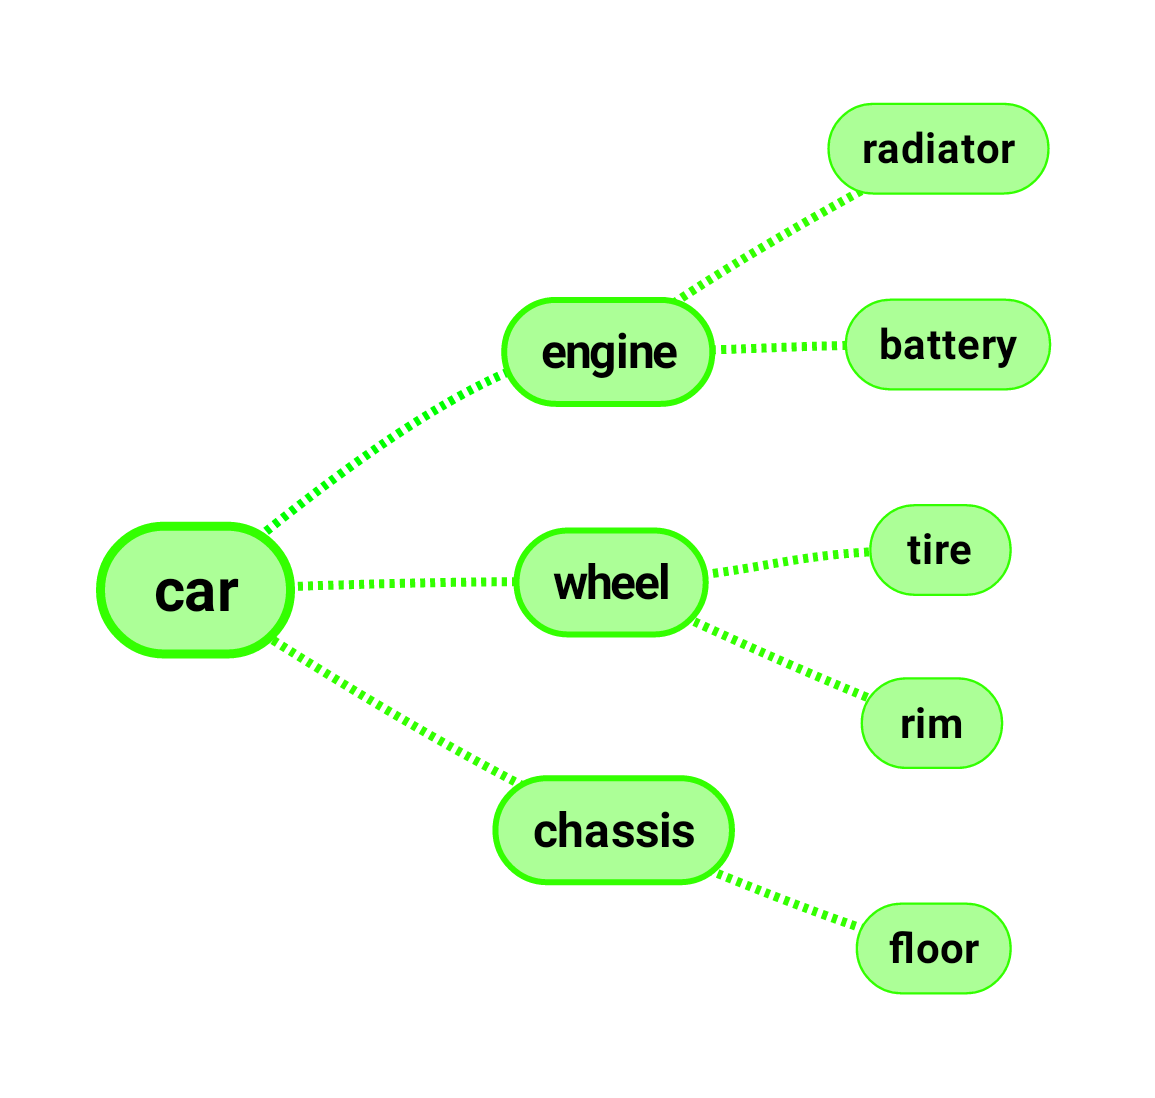 """Car"" is divided in parts engine, wheel & frame. These parts are divided into subparts again."